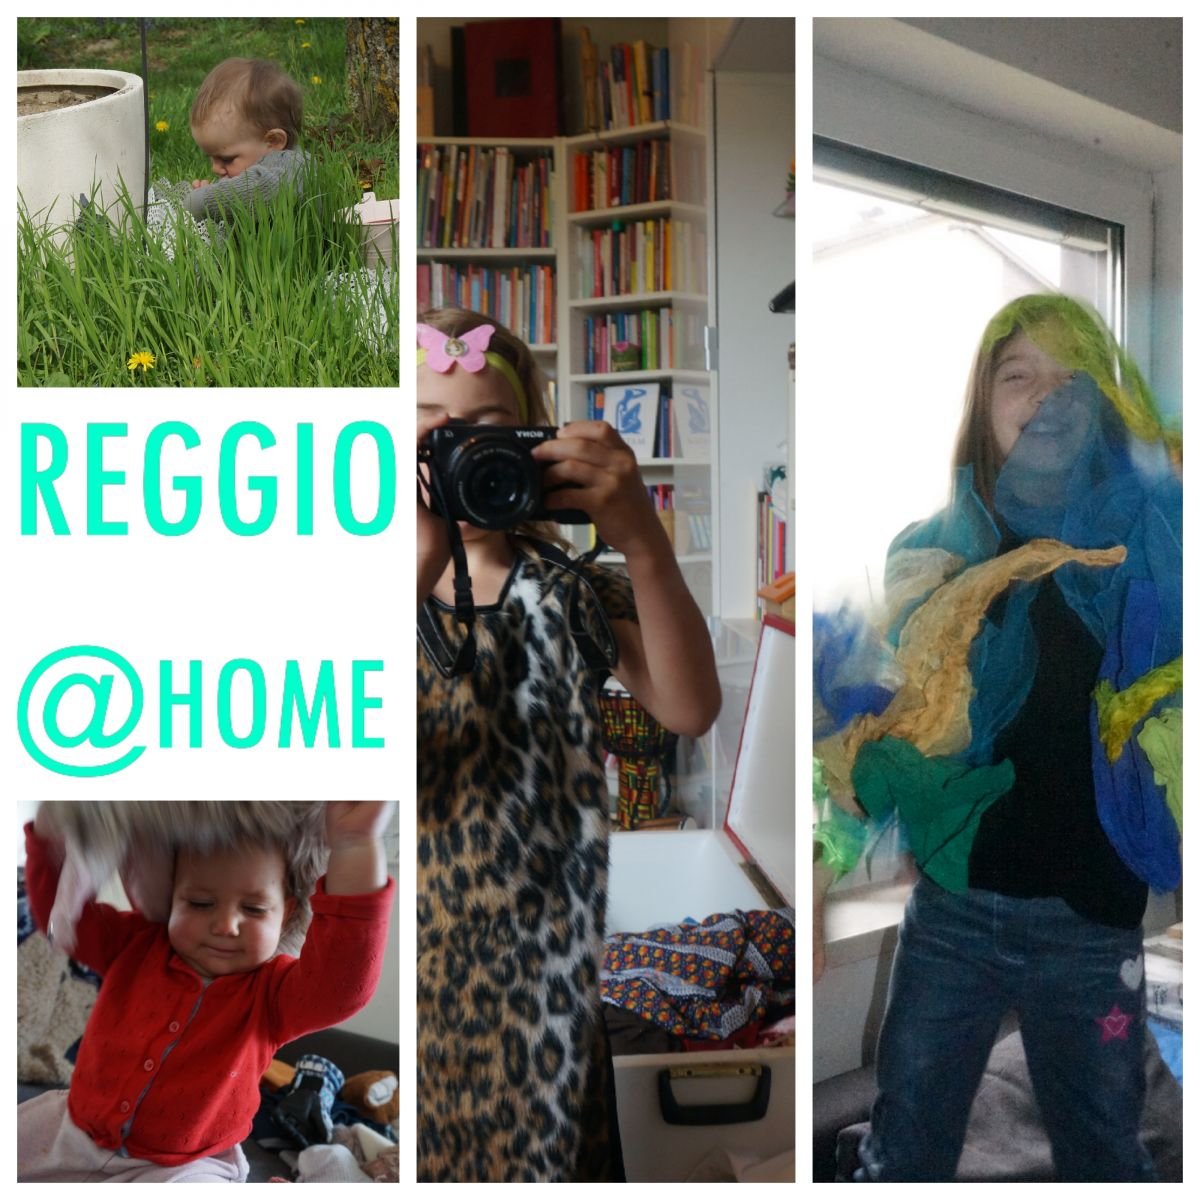 Reggio@HOME_April 2020